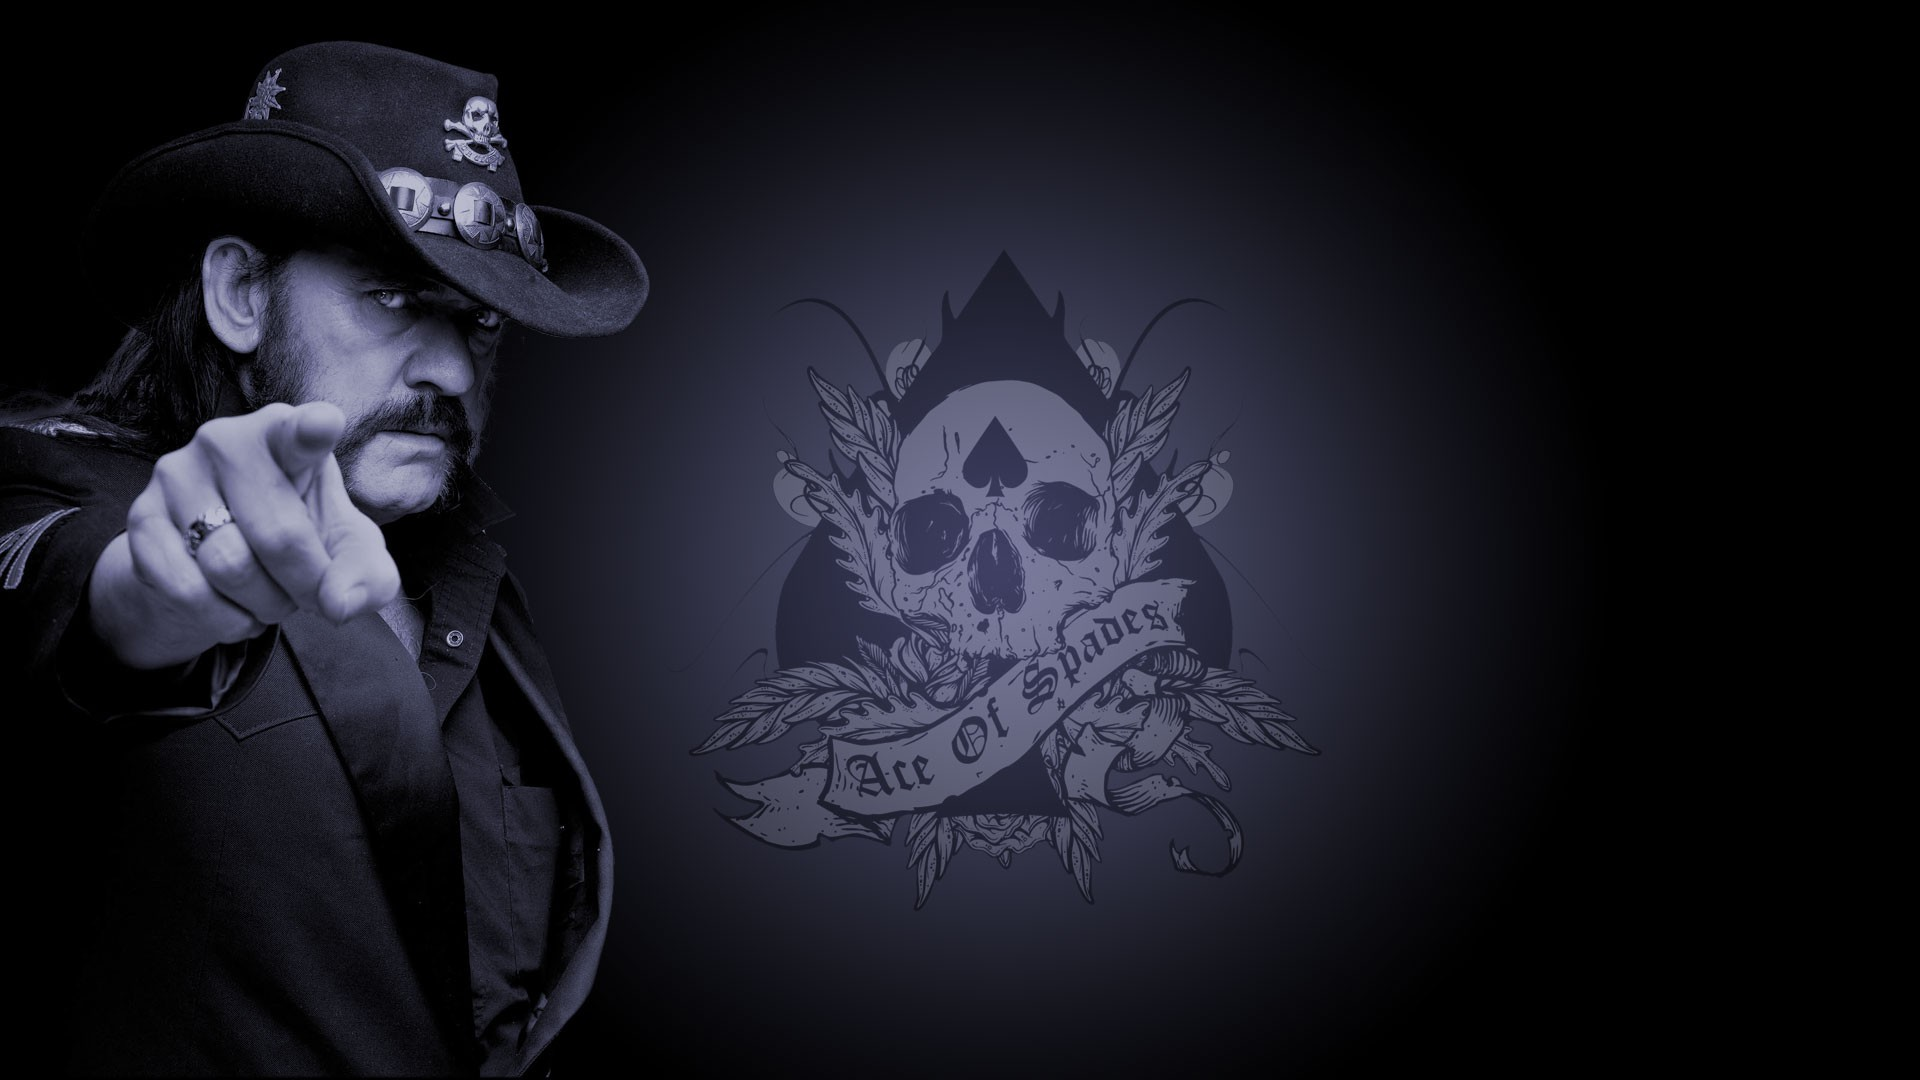 Ace of Spades HD Wallpaper Background Image 1920x1080